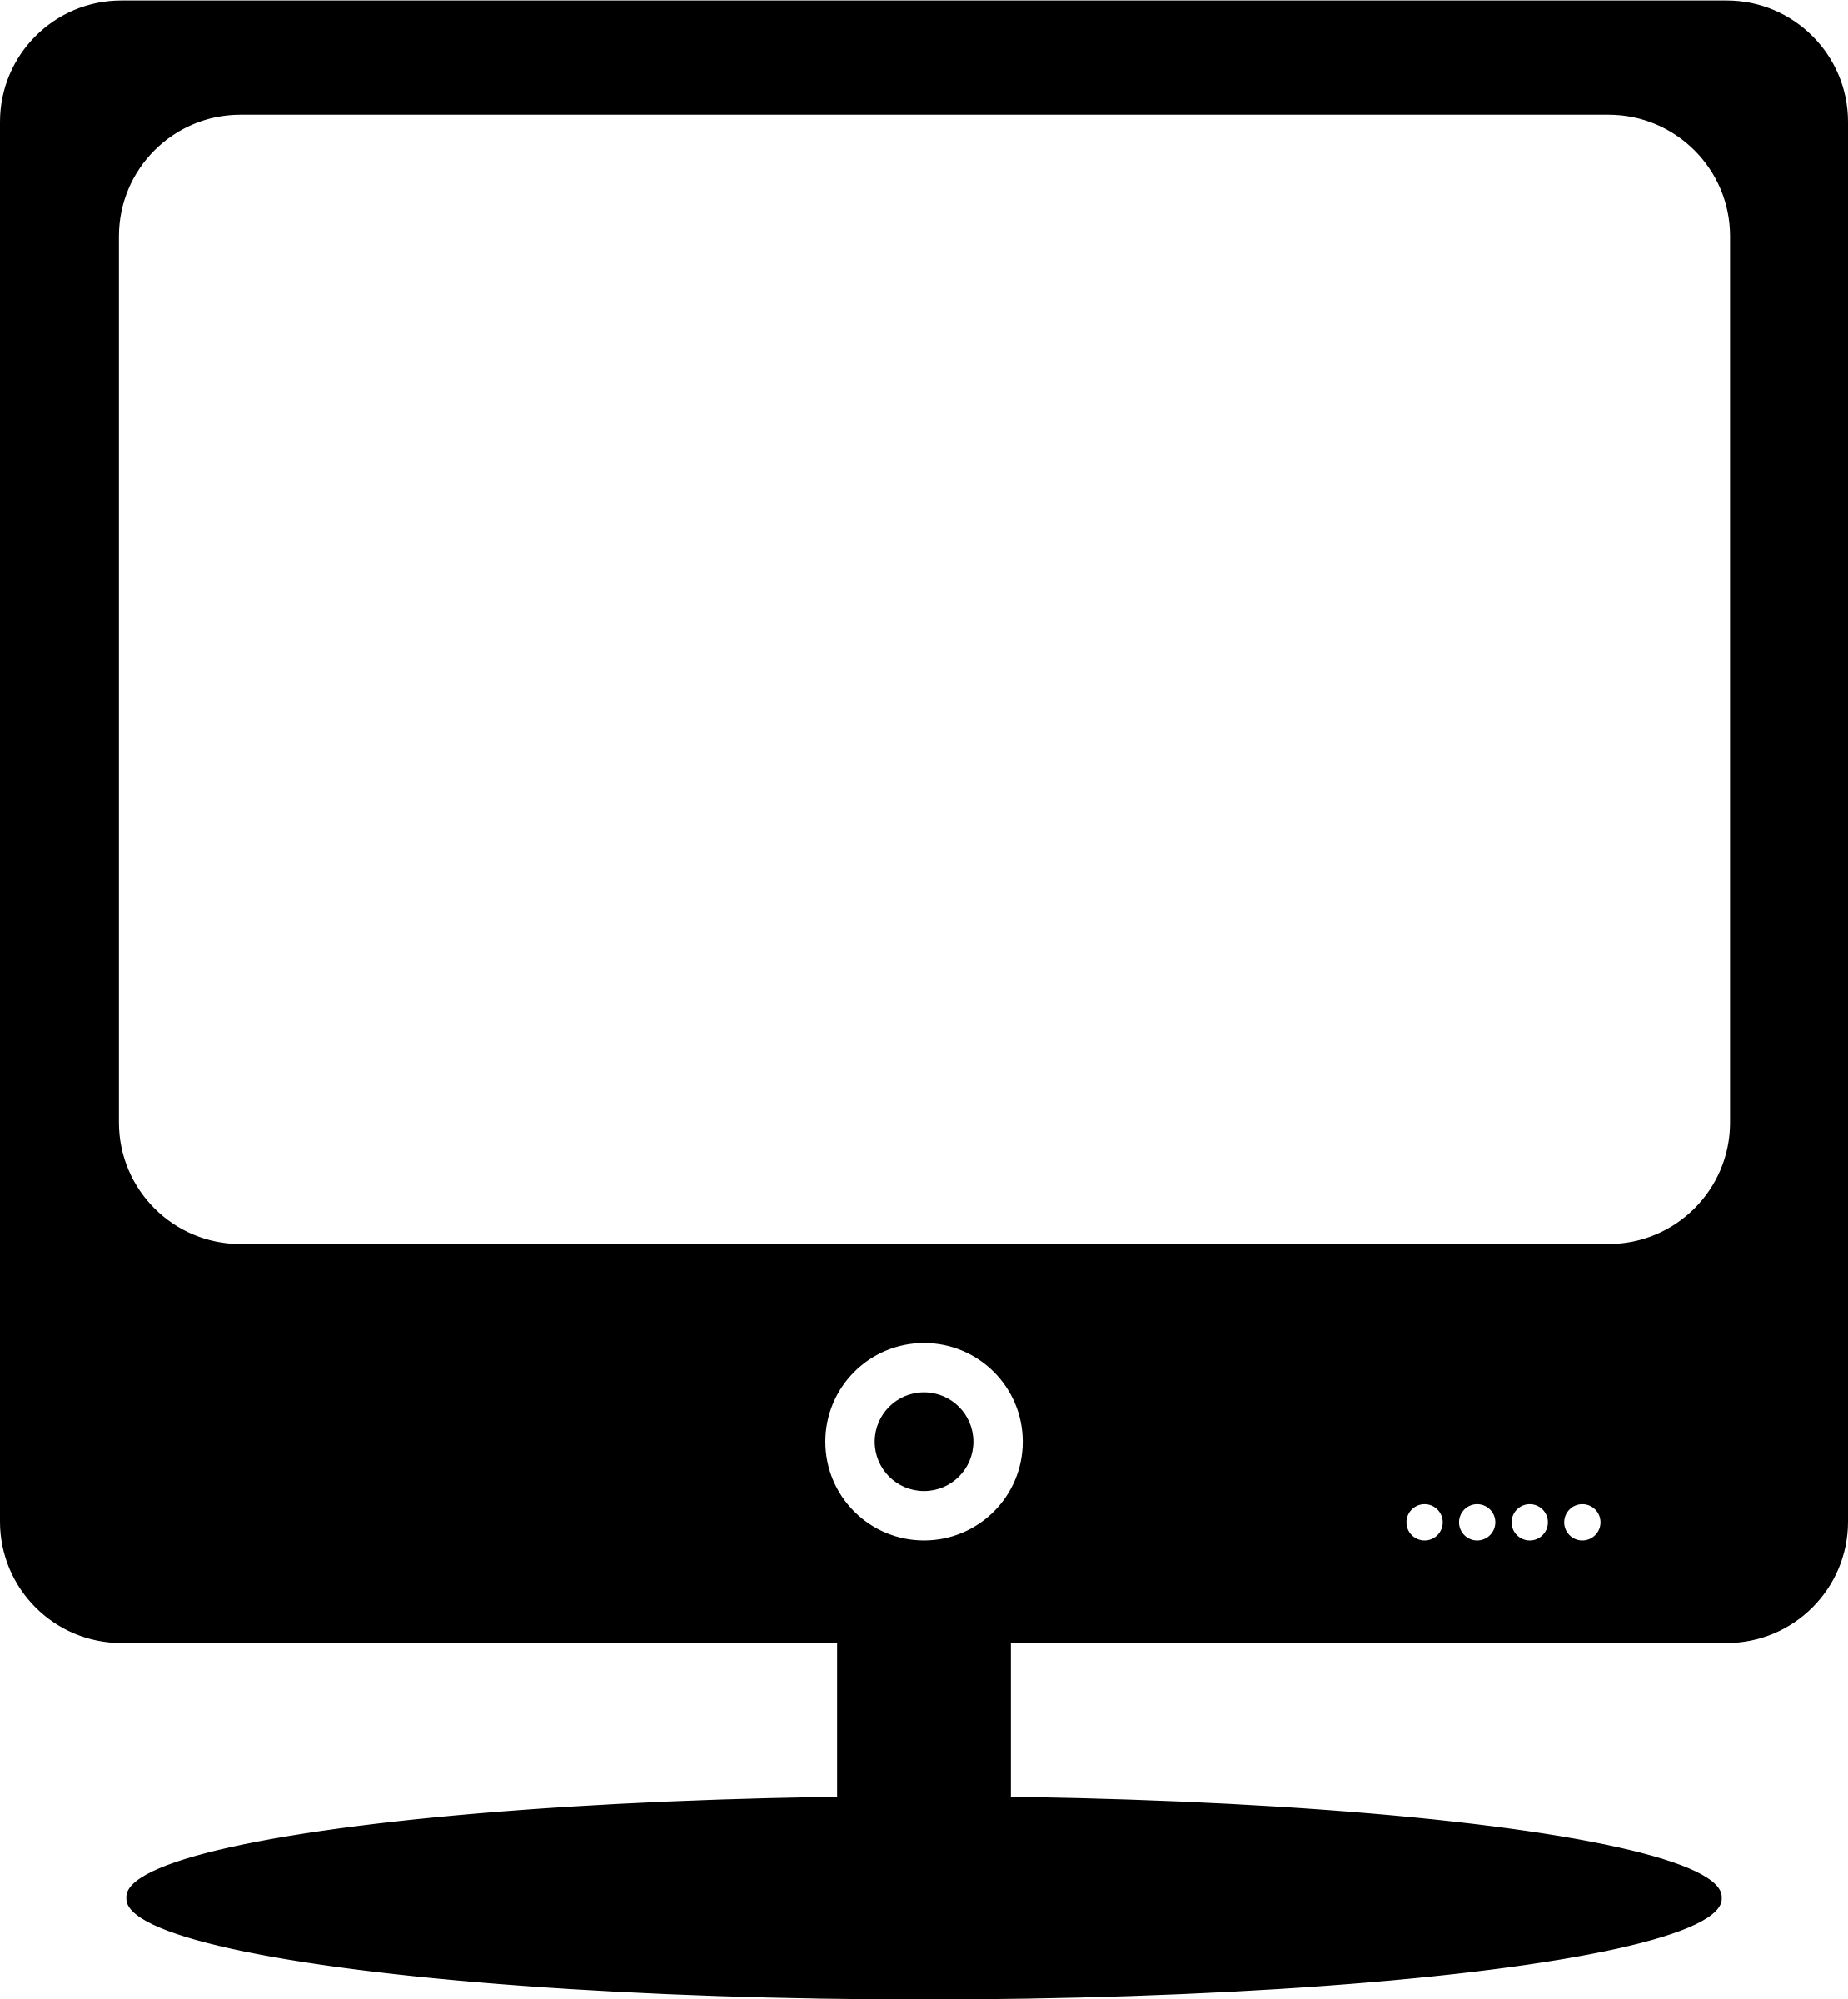 Computer clipart computer screen. Free picture of a